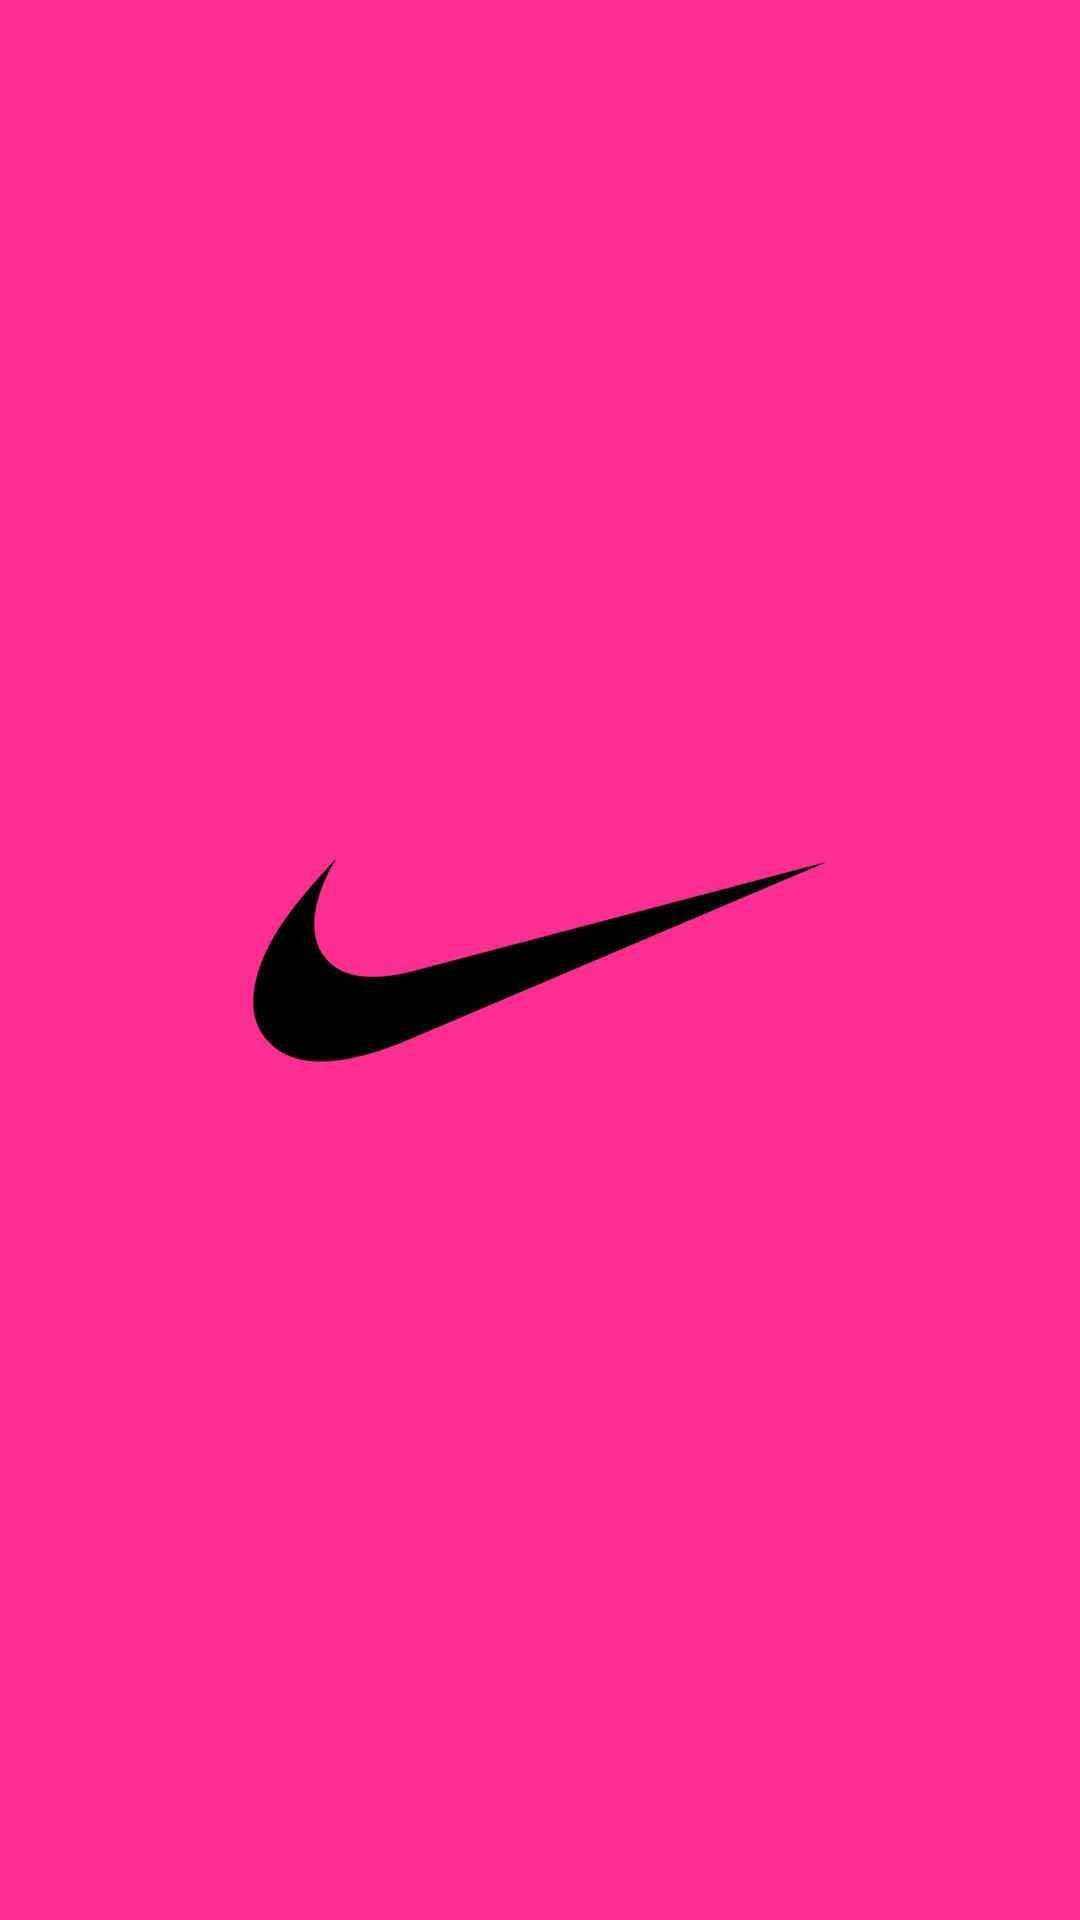 NIKE Logo iPhone Wallpaper | Pink Wallpaper! | Pinterest ...